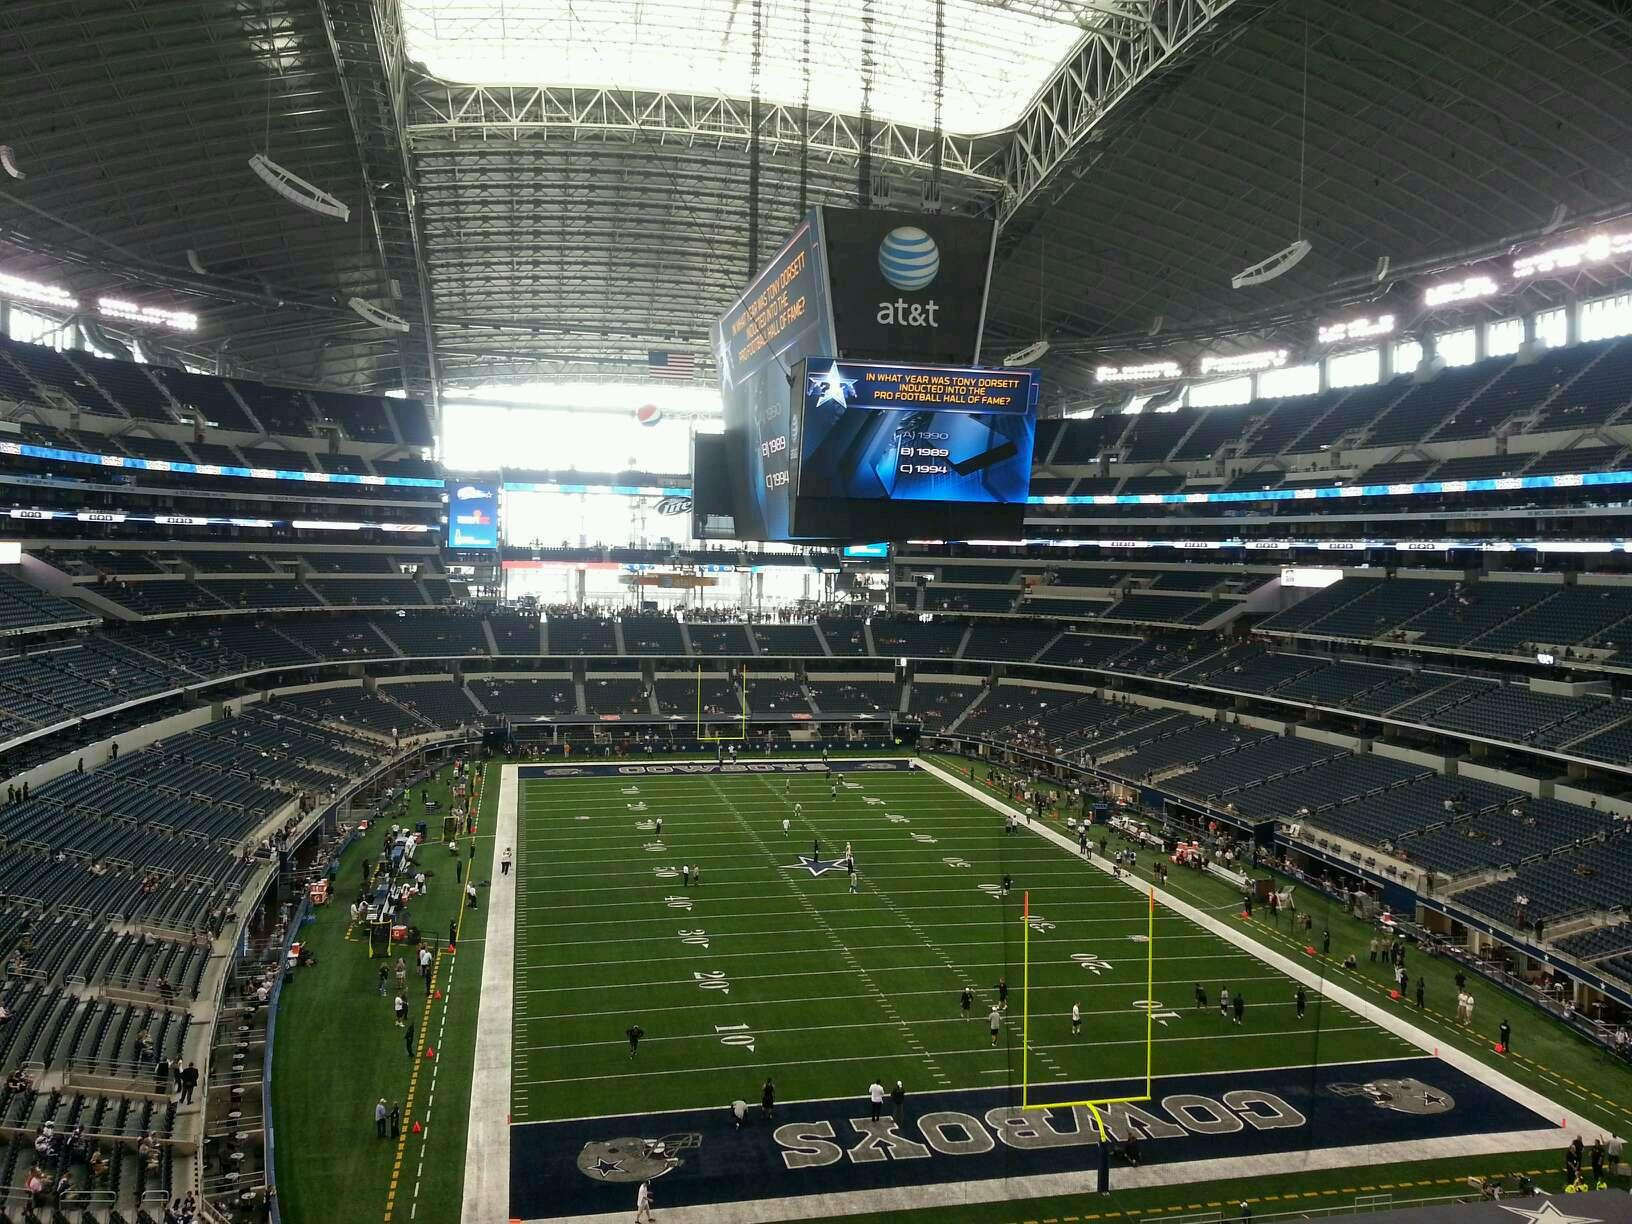 AT&T Stadium Section 350 Row 4 Seat 4